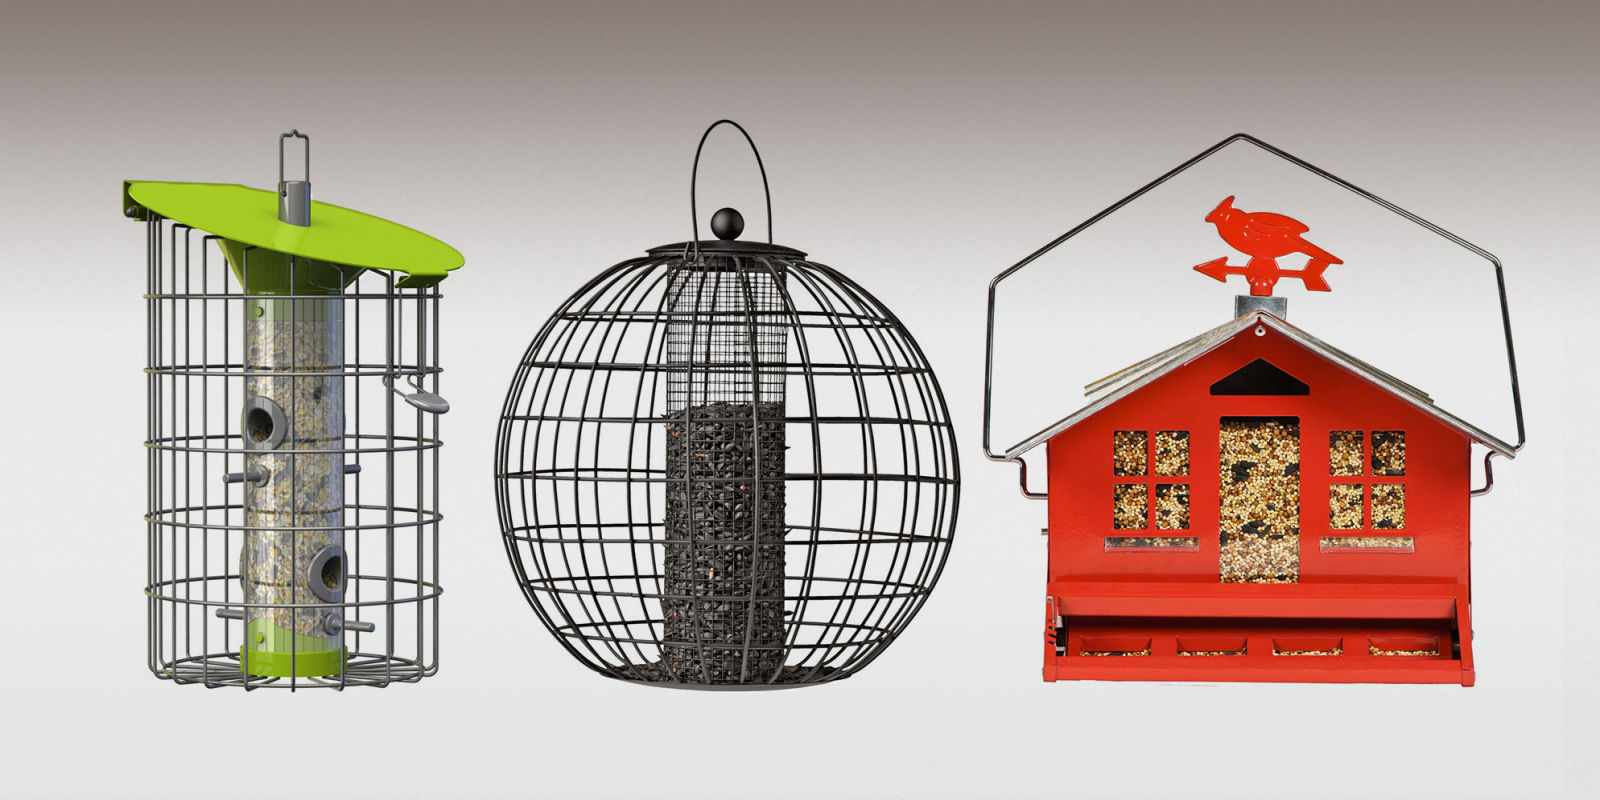 11 best bird feeders in 2017 reviews of classic and modern bird